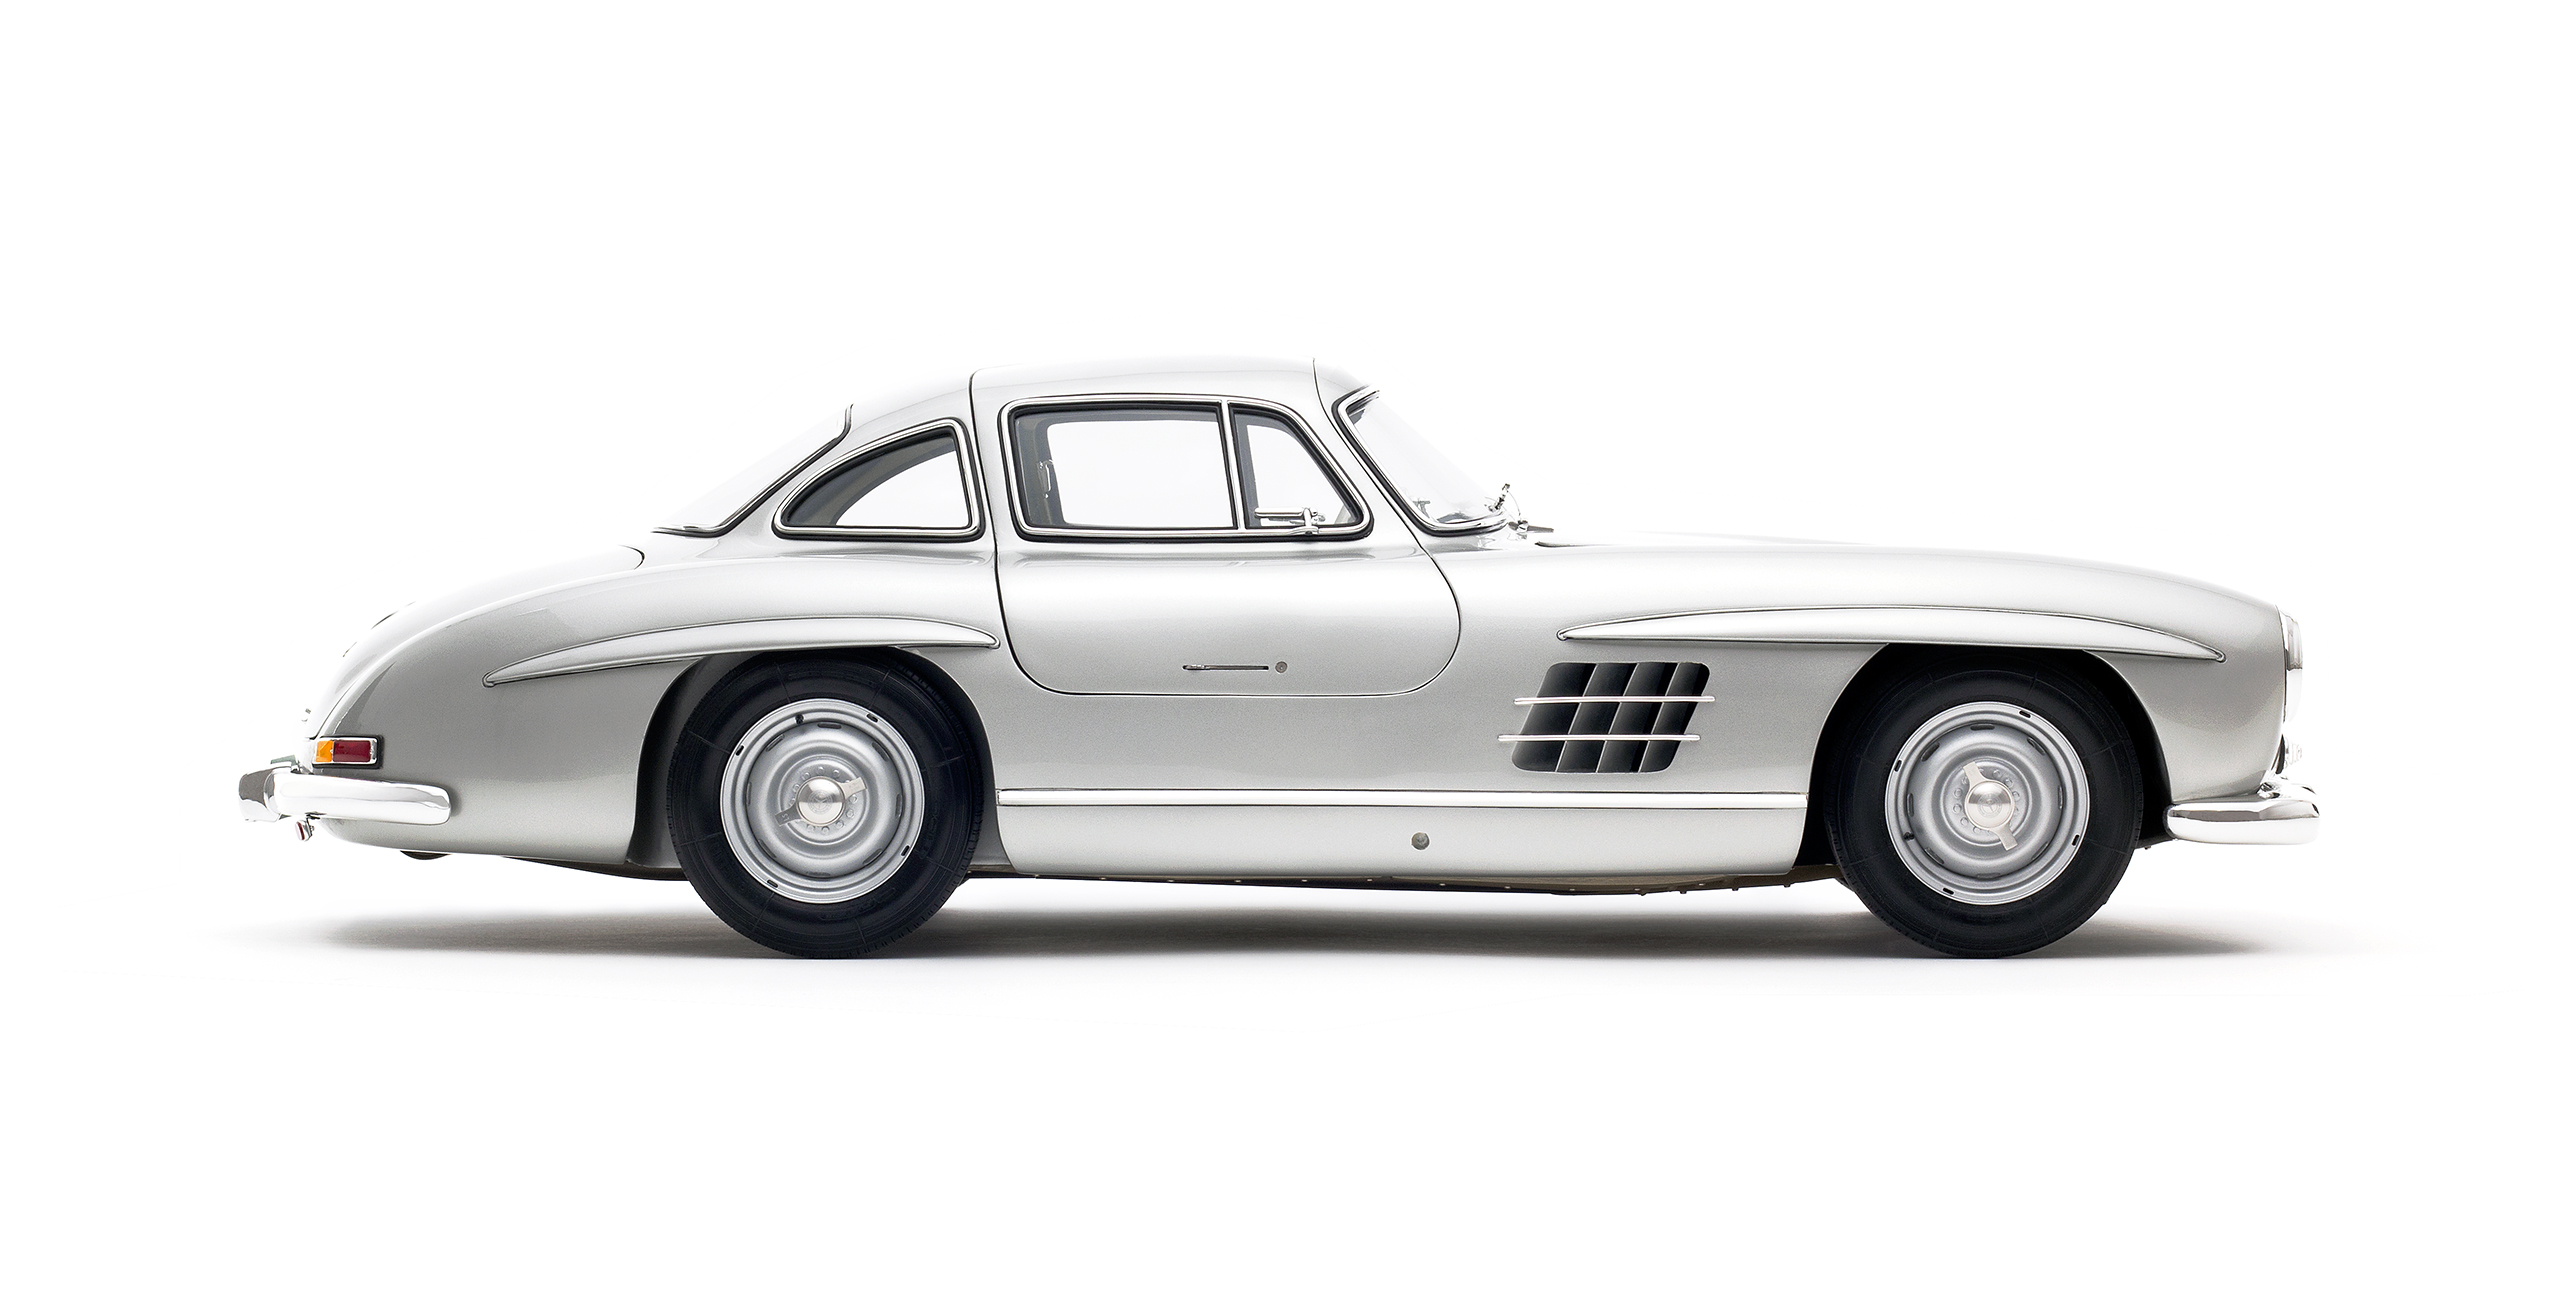 "The 1955 Mercedes Benz 300 SL Coupe ""Gullwing"" was the fastest production car of its time, the first to use fuel injection directly into the cylinders for a top speed of 161 miles per hour"